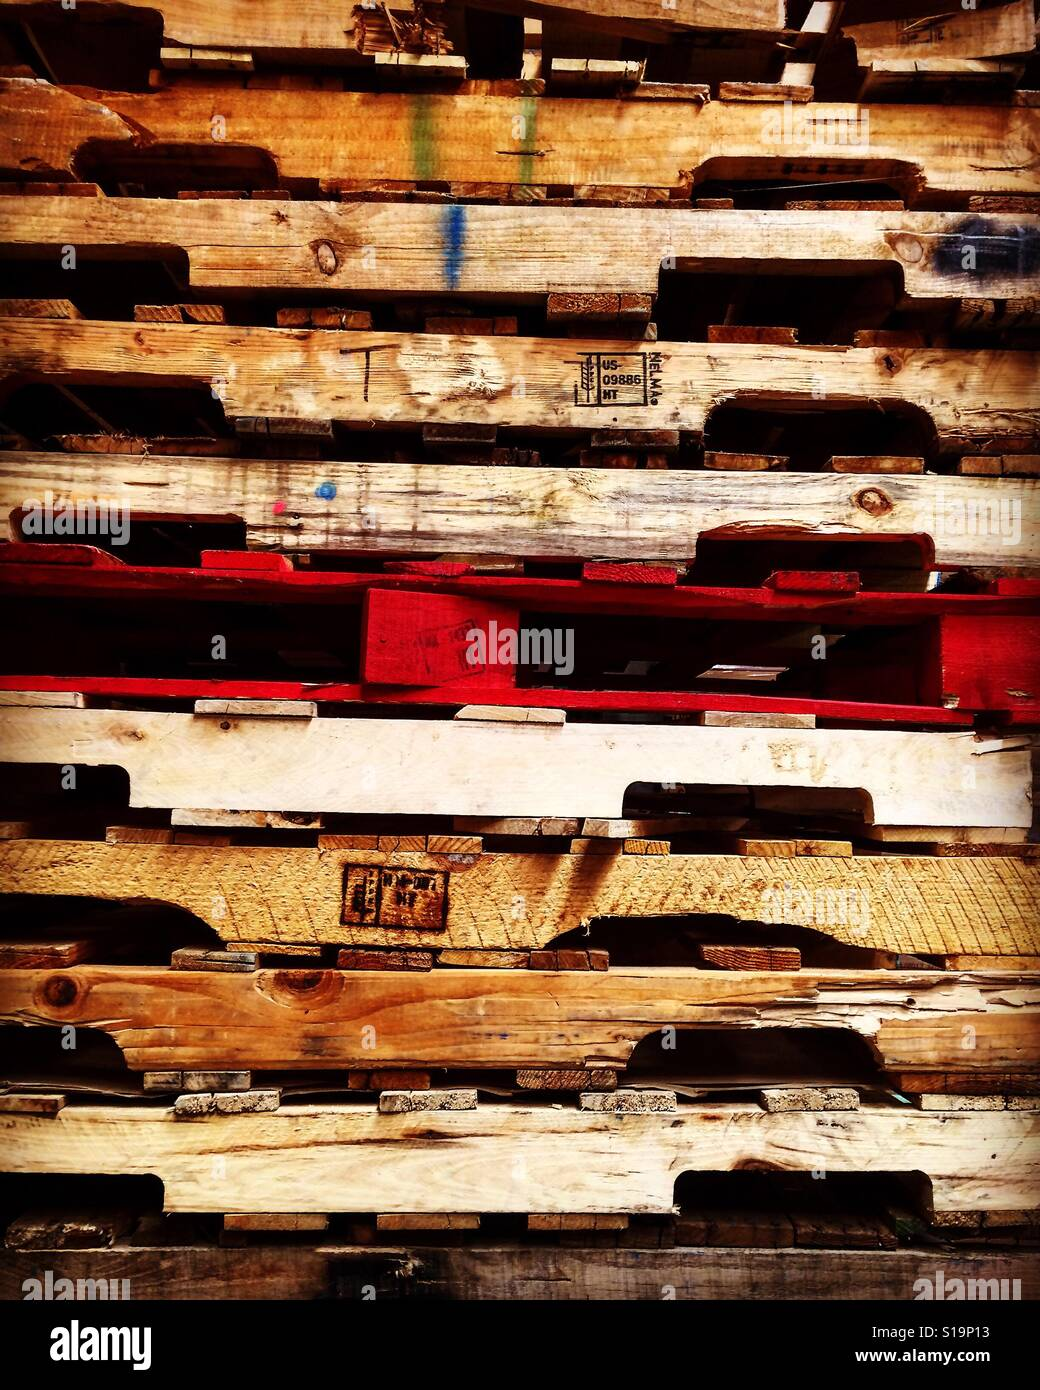 Photo of stack of wood pallet - Stock Image